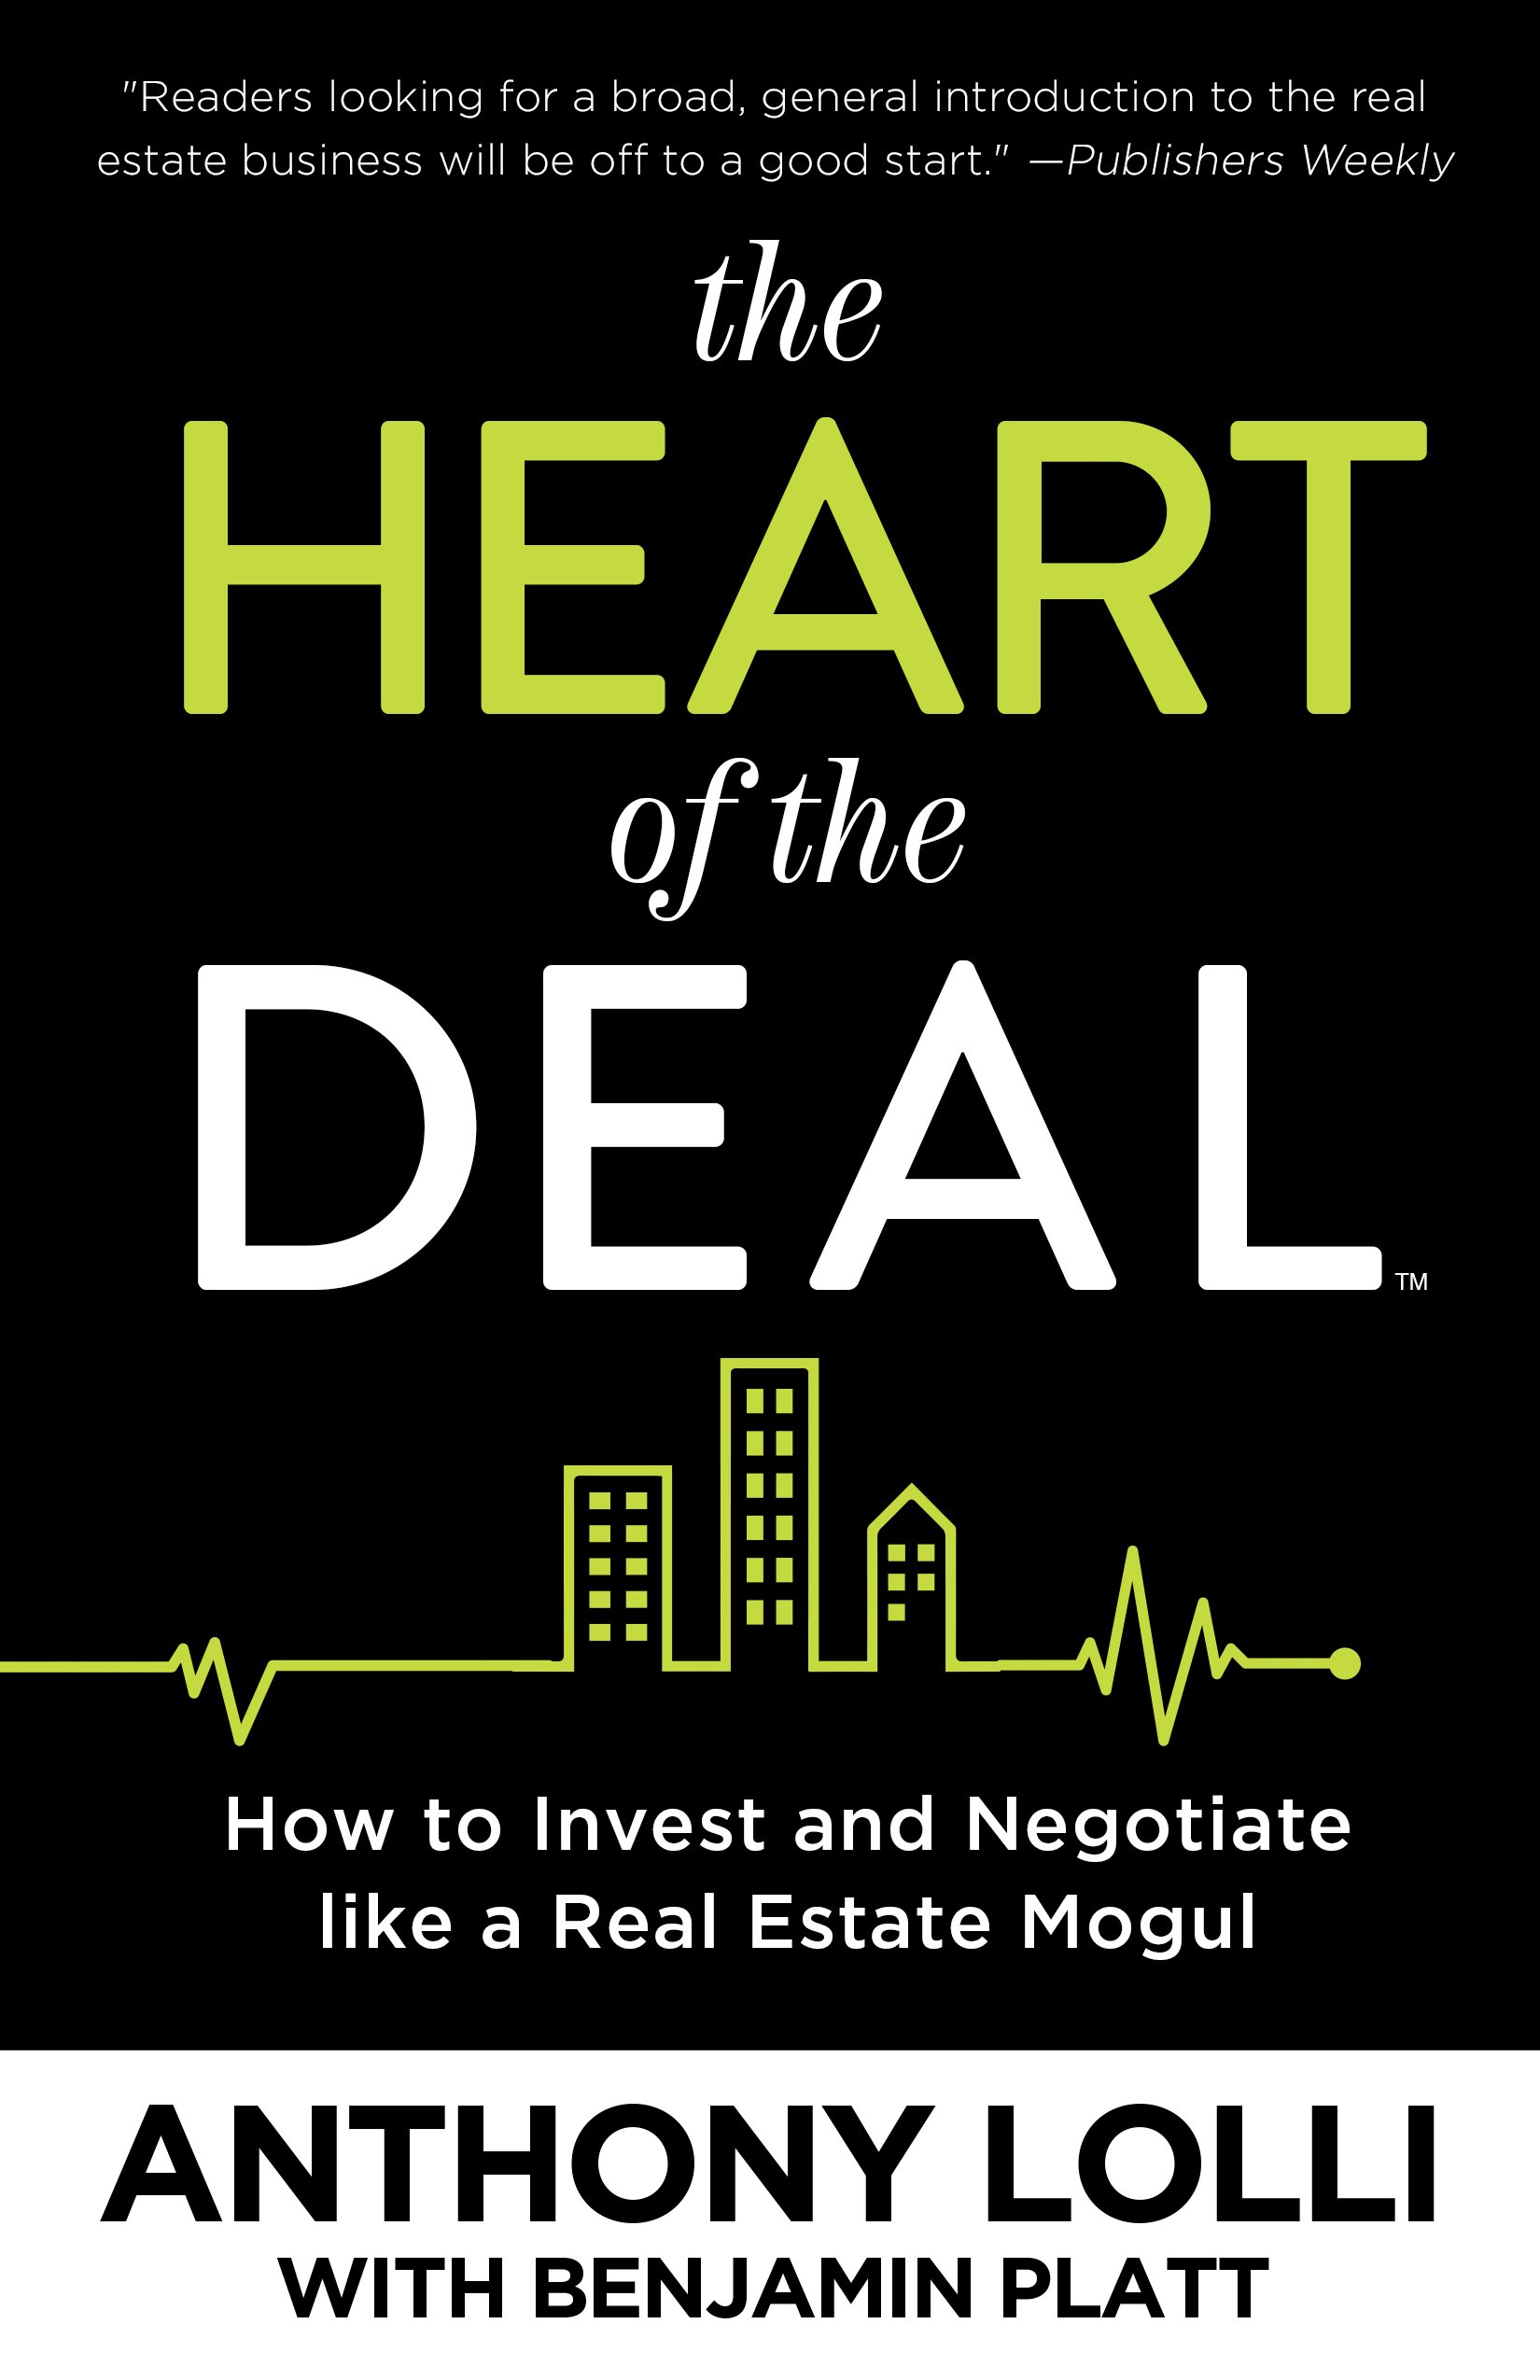 The Heart of the Deal How to Invest and Negotiate like a Real